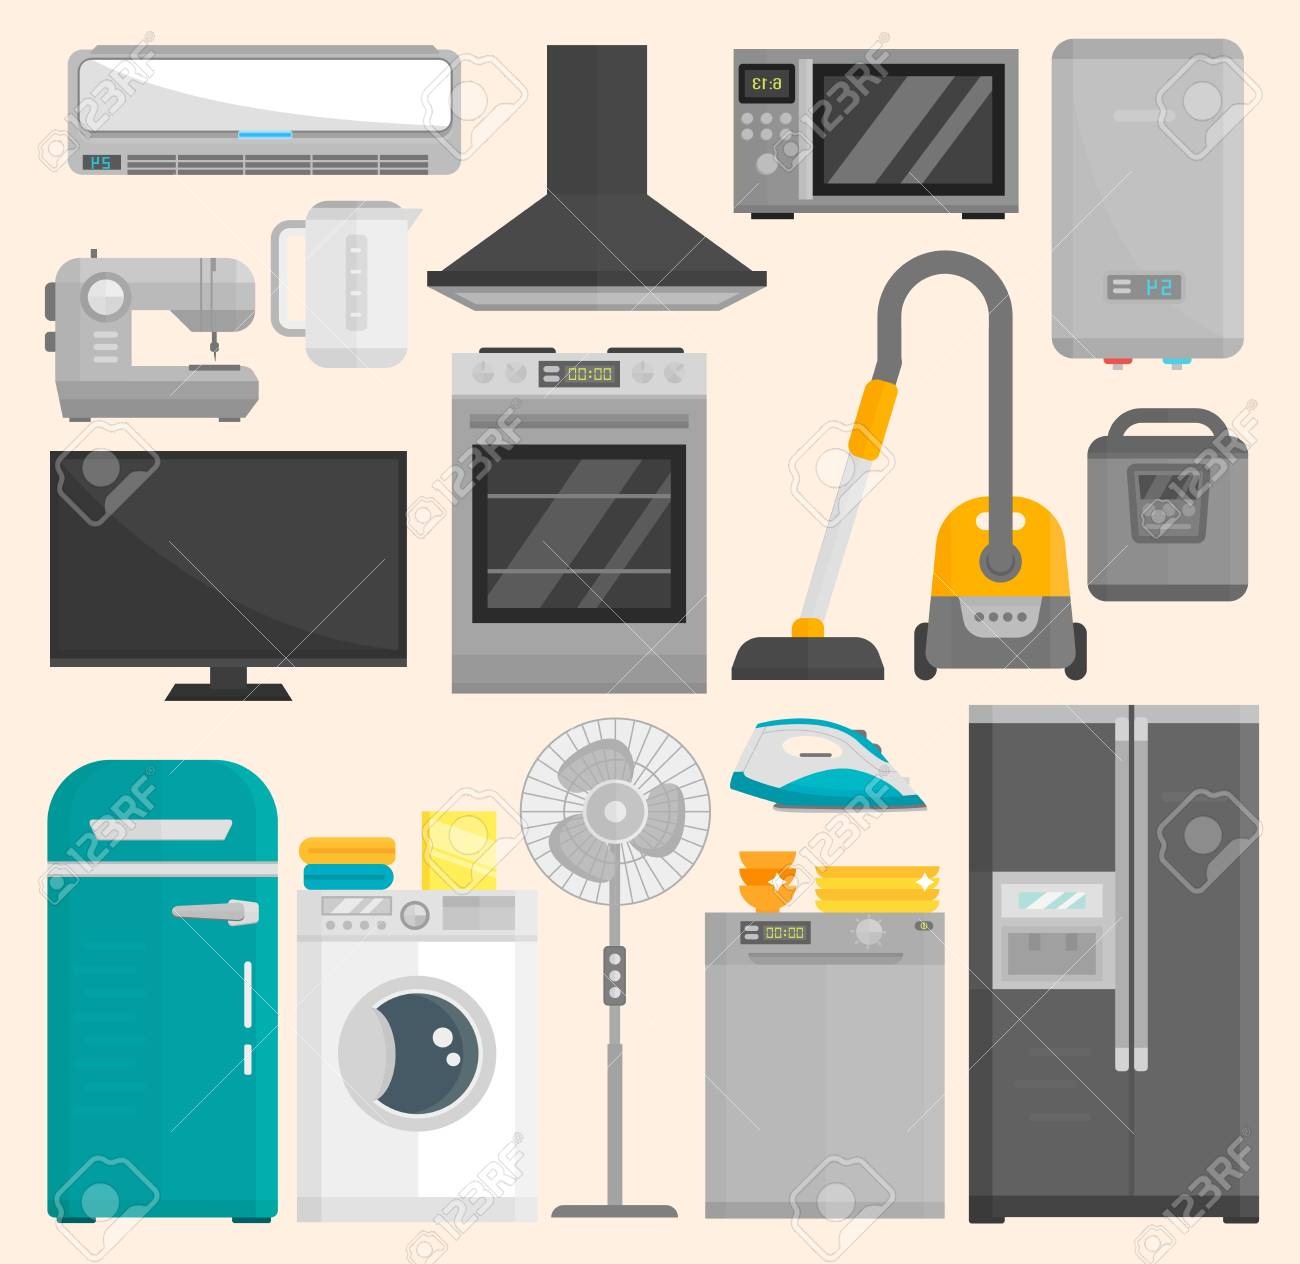 Group of home appliances isolated on white background. Kitchen equipment refrigerator home appliance domestic oven washing microwave electric home appliance cooking freezer tool - 95925462